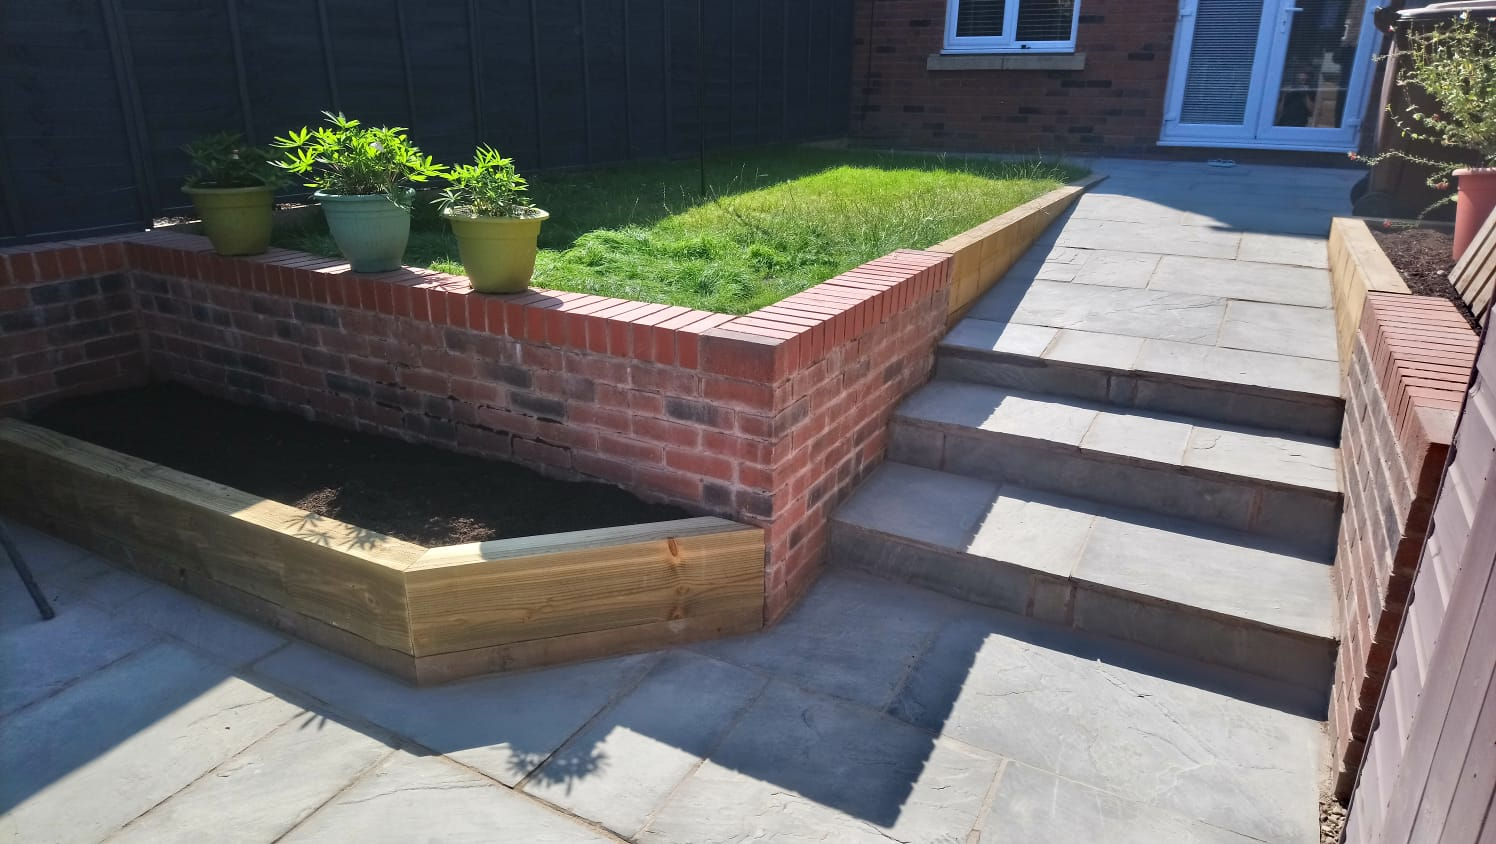 Landscaping in Endon - Indian Stone Path